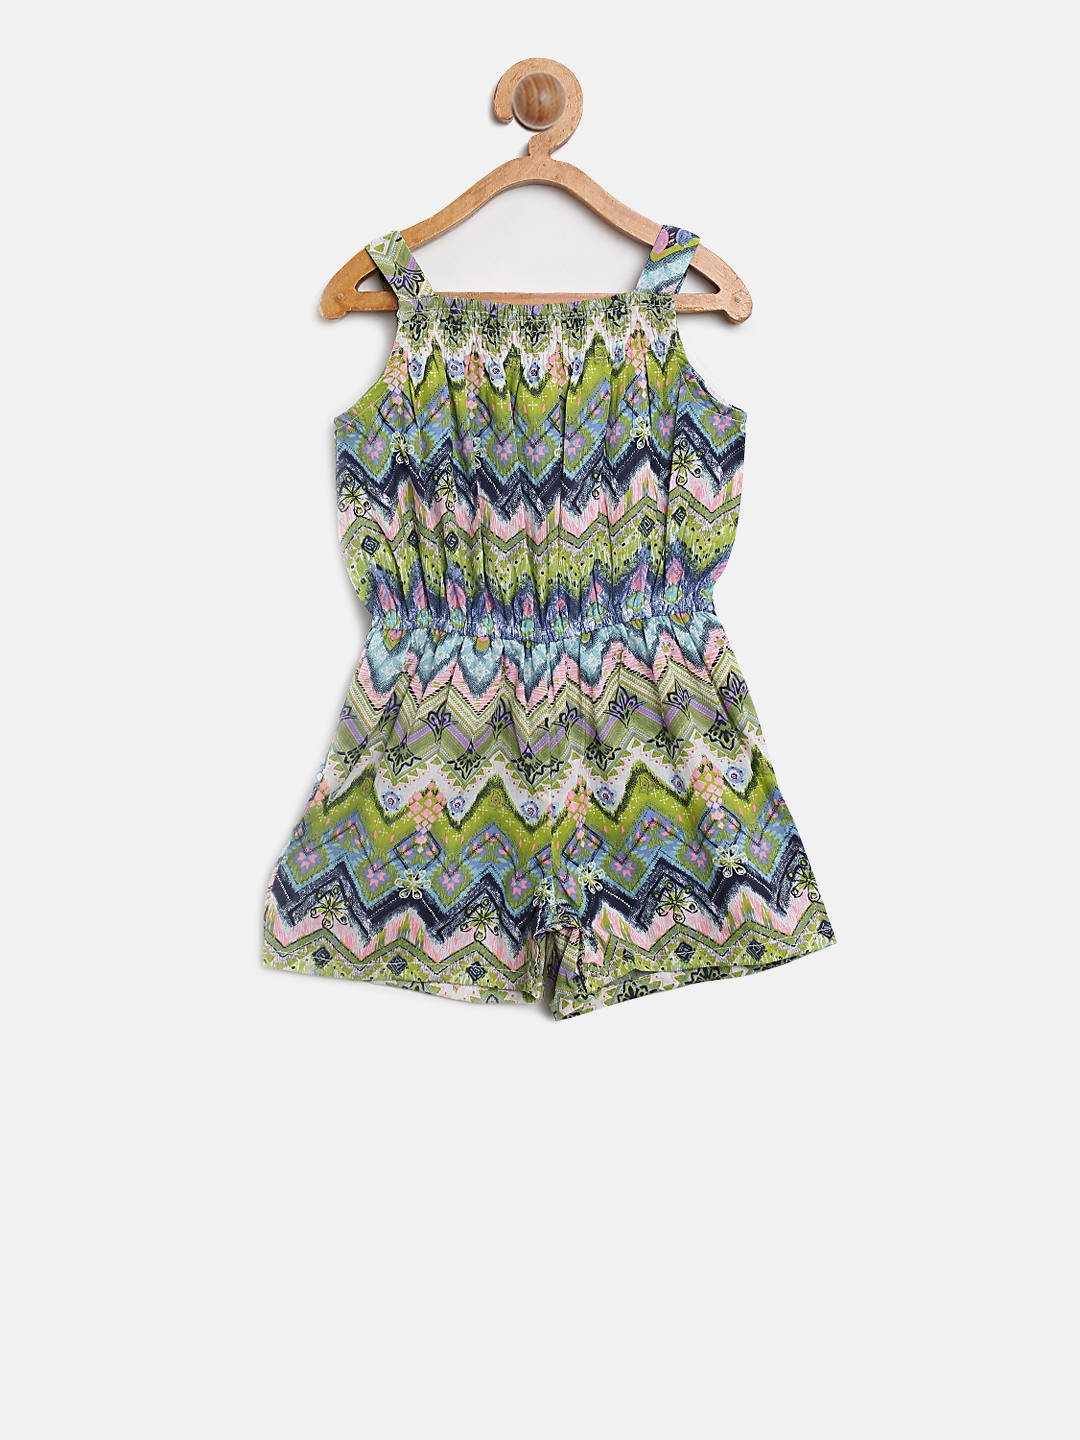 f133464d896 Buy Nauti Nati Girls Green   Blue Printed Playsuit - Jumpsuit for ...